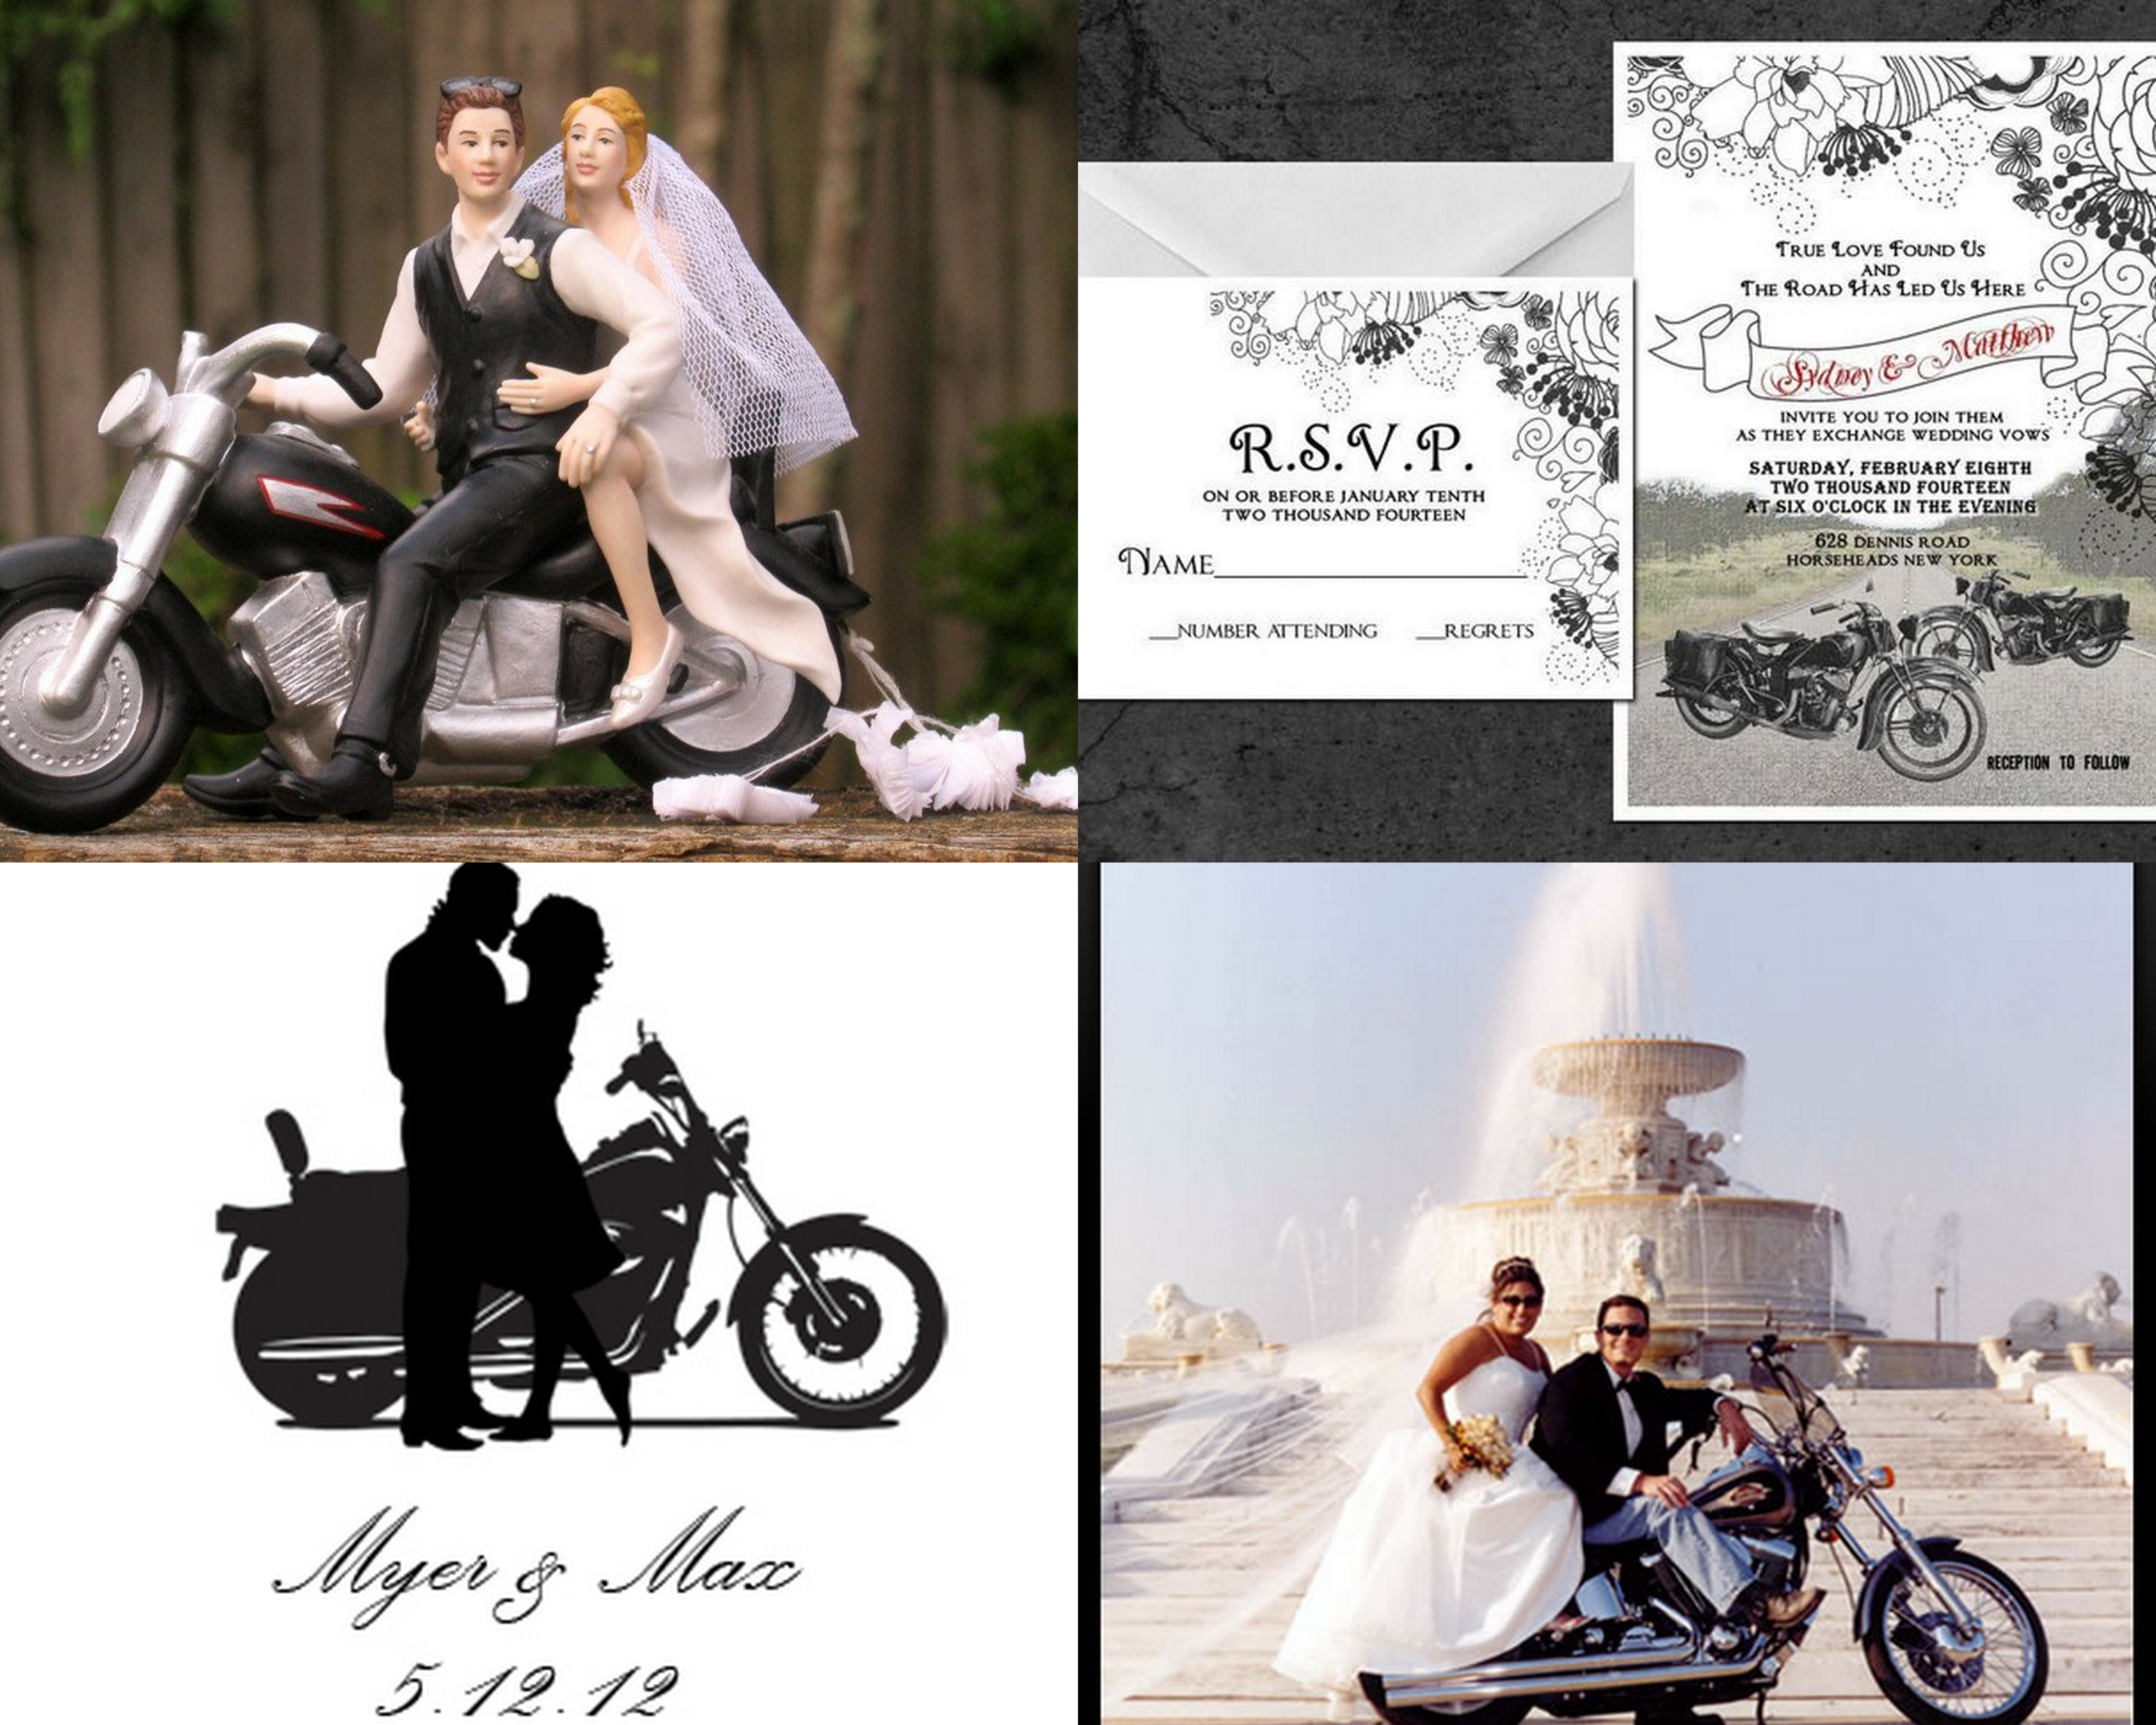 Audacious Motorcycle Wedding Invitations Can Change The Whole Scene